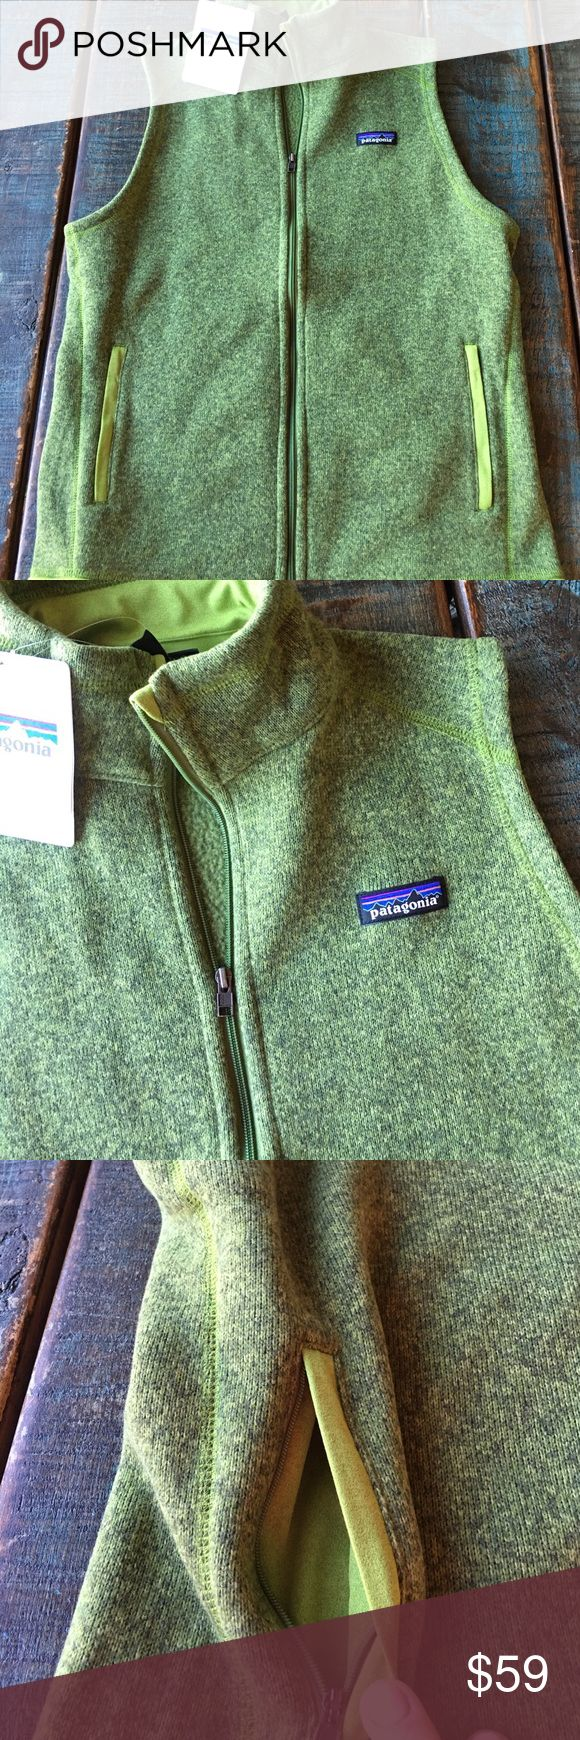 """Patagonia Better Sweater Vest 💙 Brand new with tags! Slim fit. It's a large but I'm a Medium (10) in most other tops and this fits perfectly, not snug if you are normally a medium. Supply Green in color. 100% polyester. 20.5"""" across front. Patagonia Jackets & Coats Vests"""